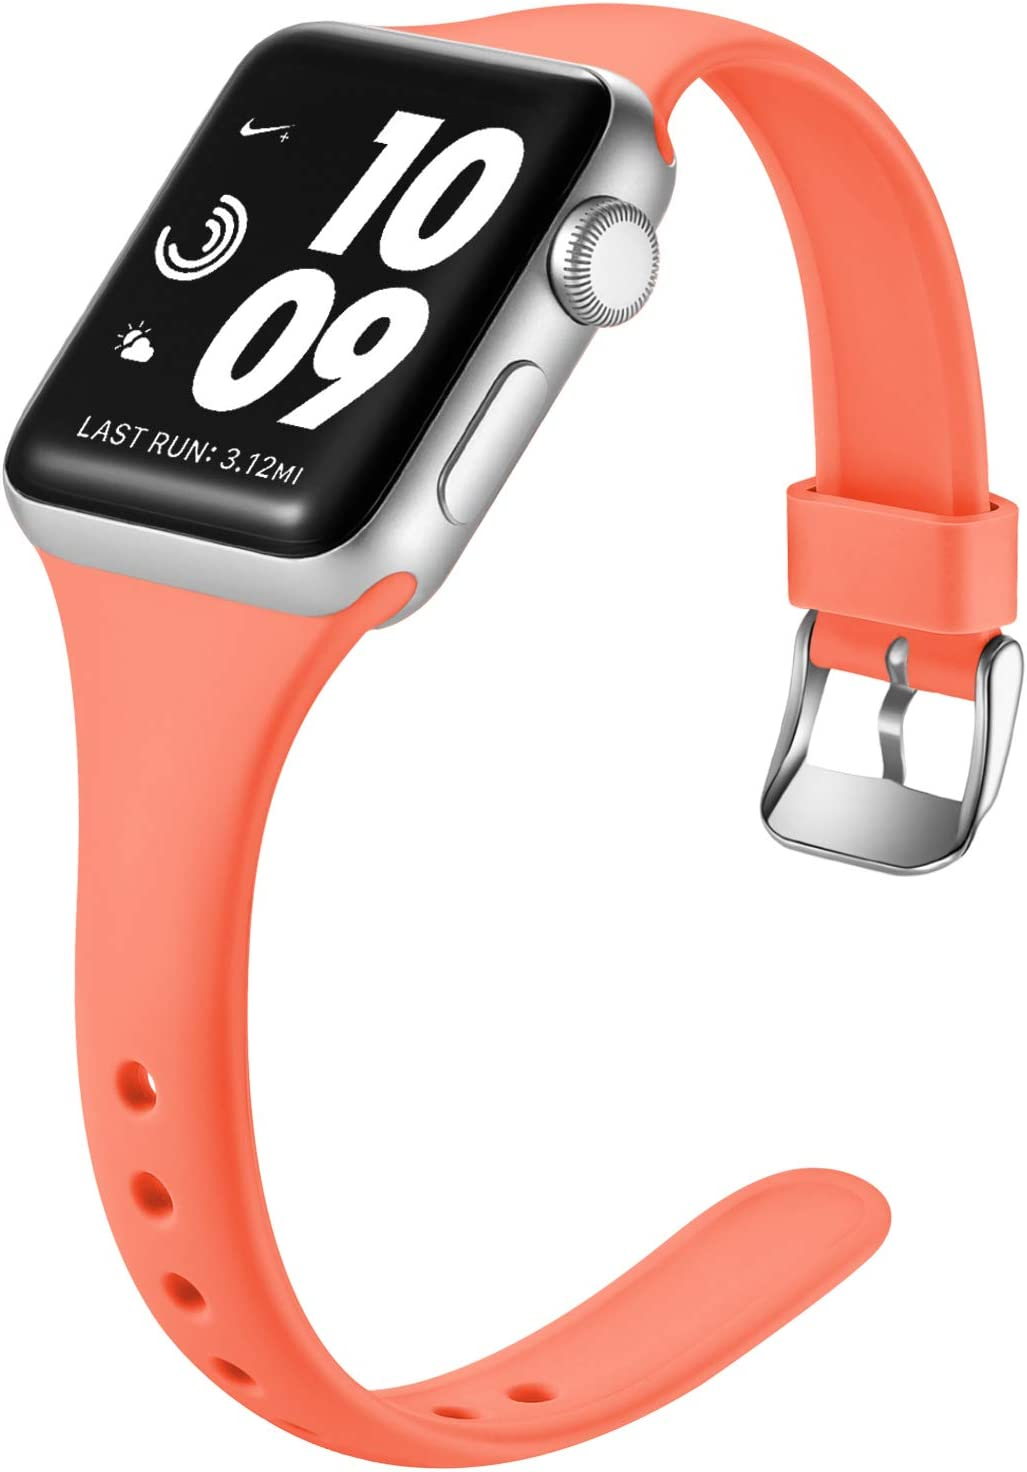 Laffav Sport Band Compatible with Apple Watch 38mm 40mm for Women Men Slim Sport Replacement Wristband for iWatch SE & Series 6 & Series 5 4 3 2 1, Coral, S/M